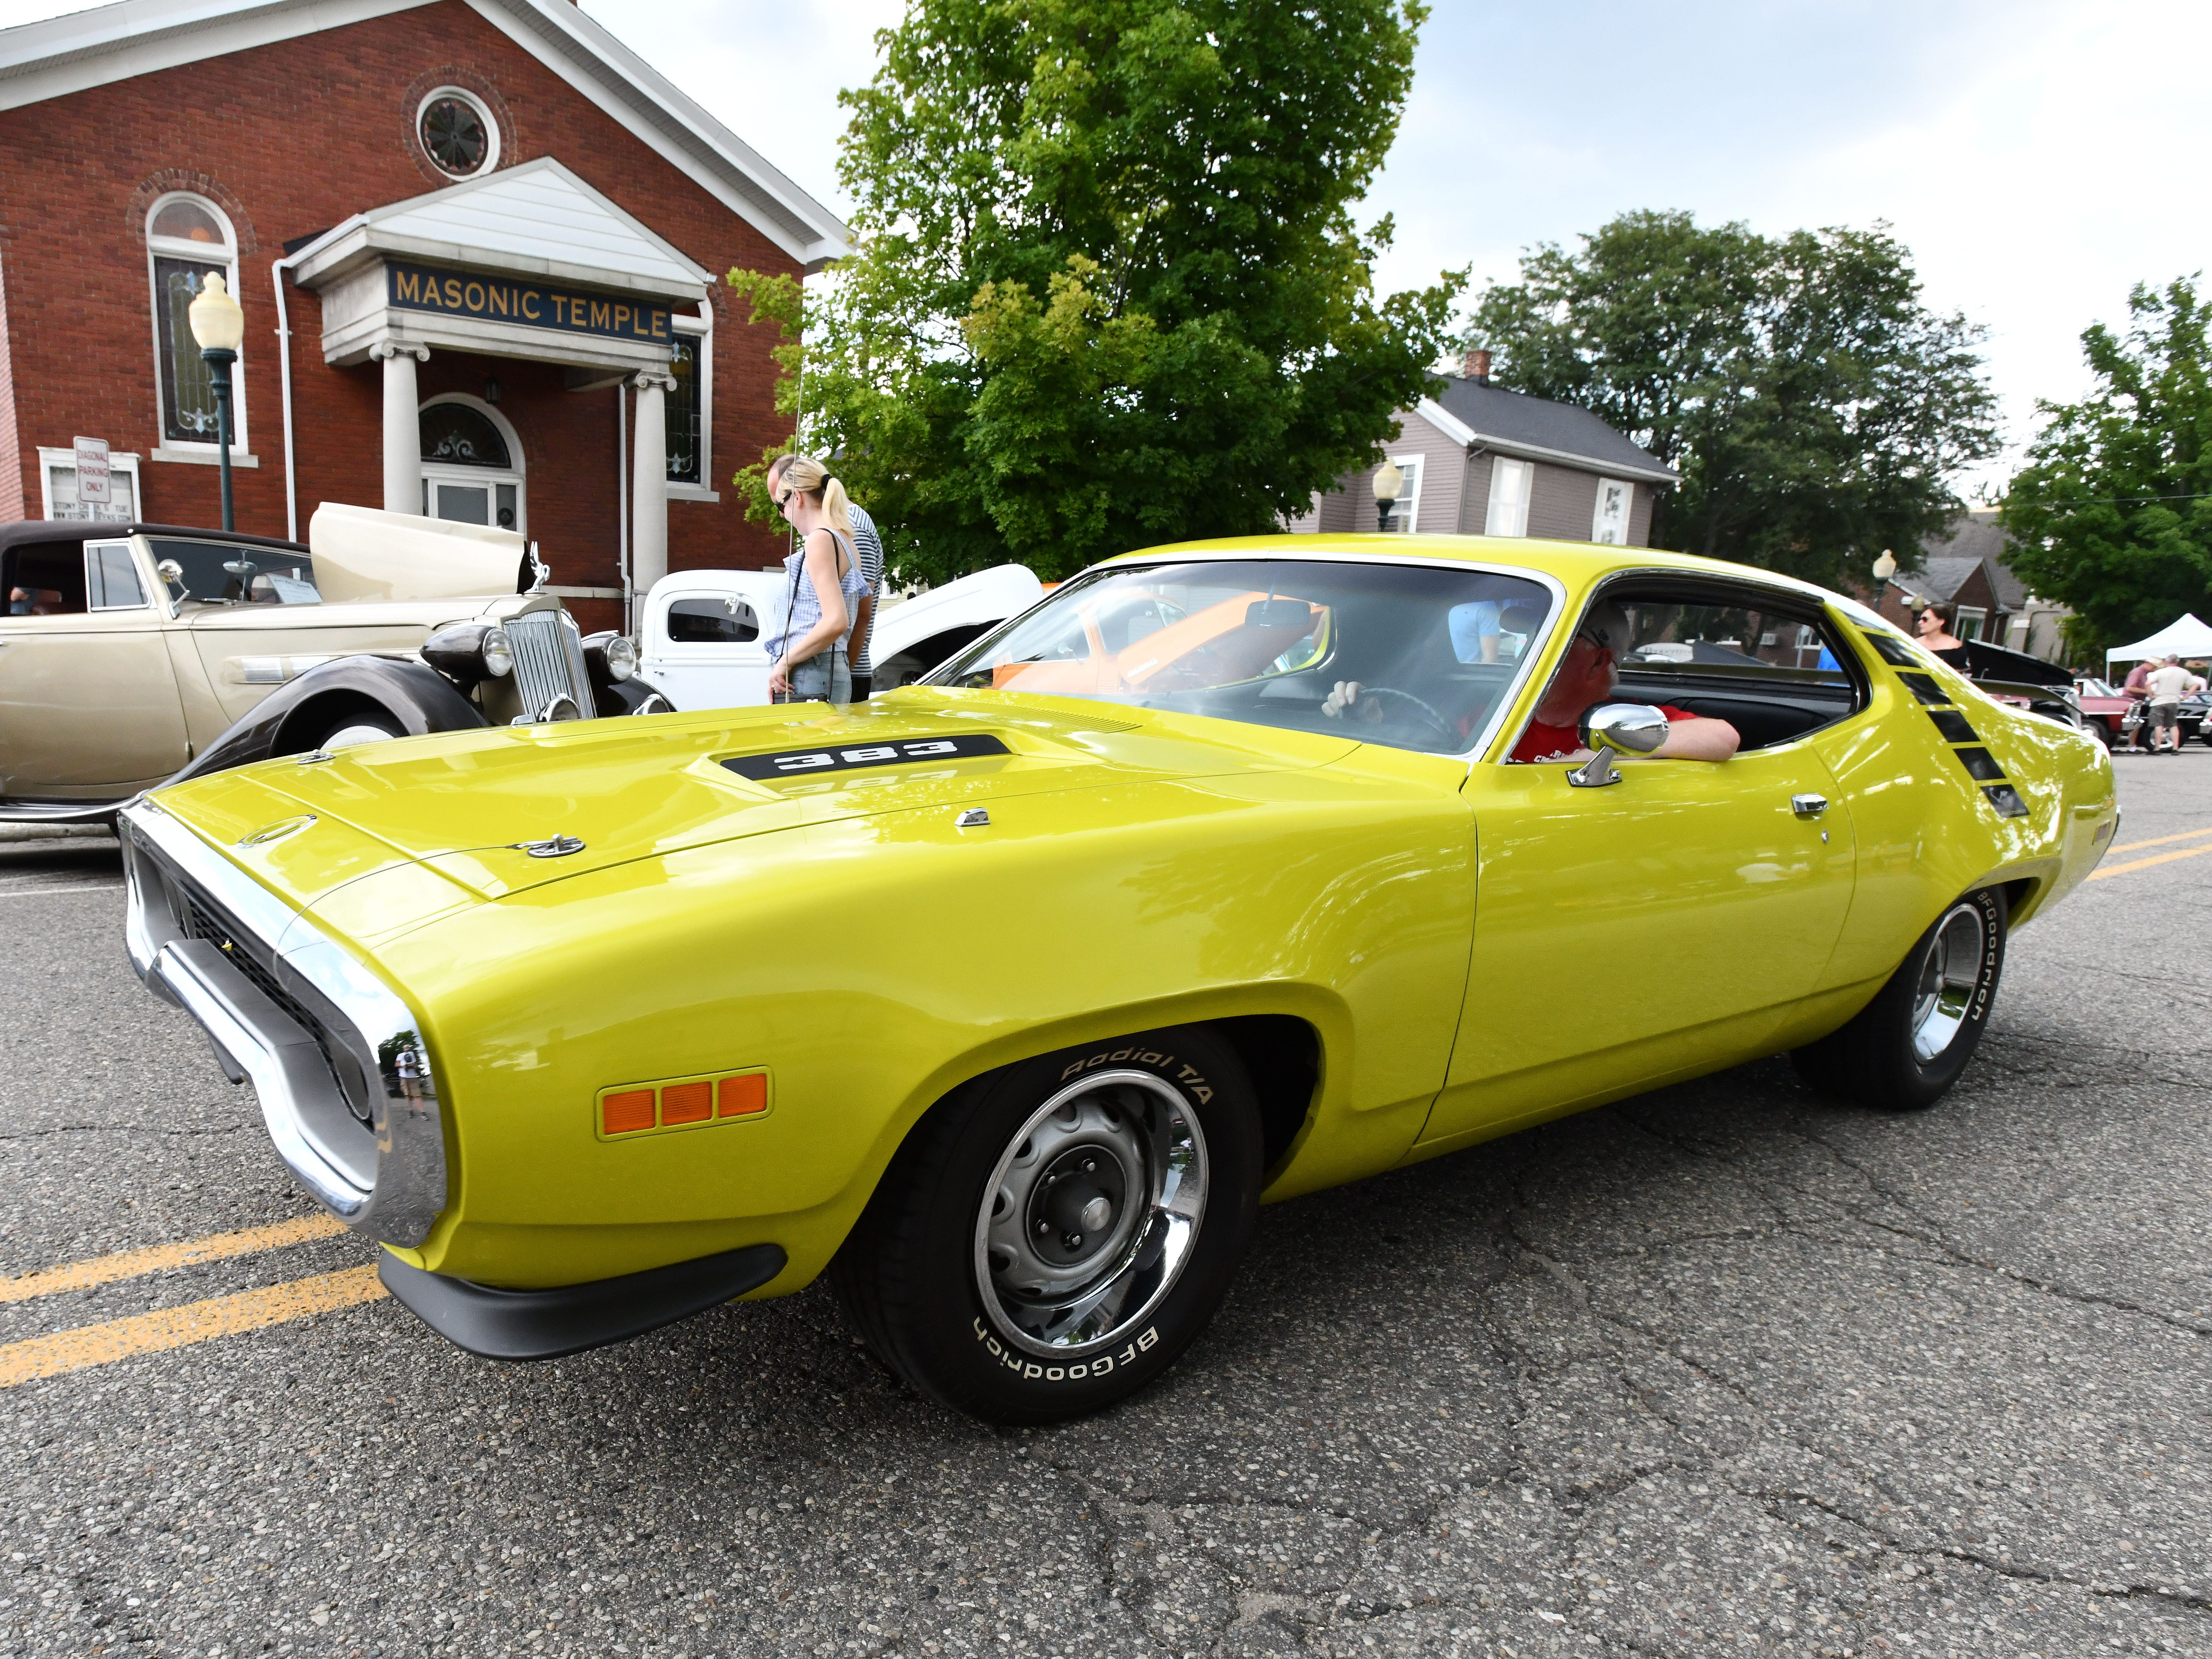 A 1971 Road Runner zips through the cars and crowd.